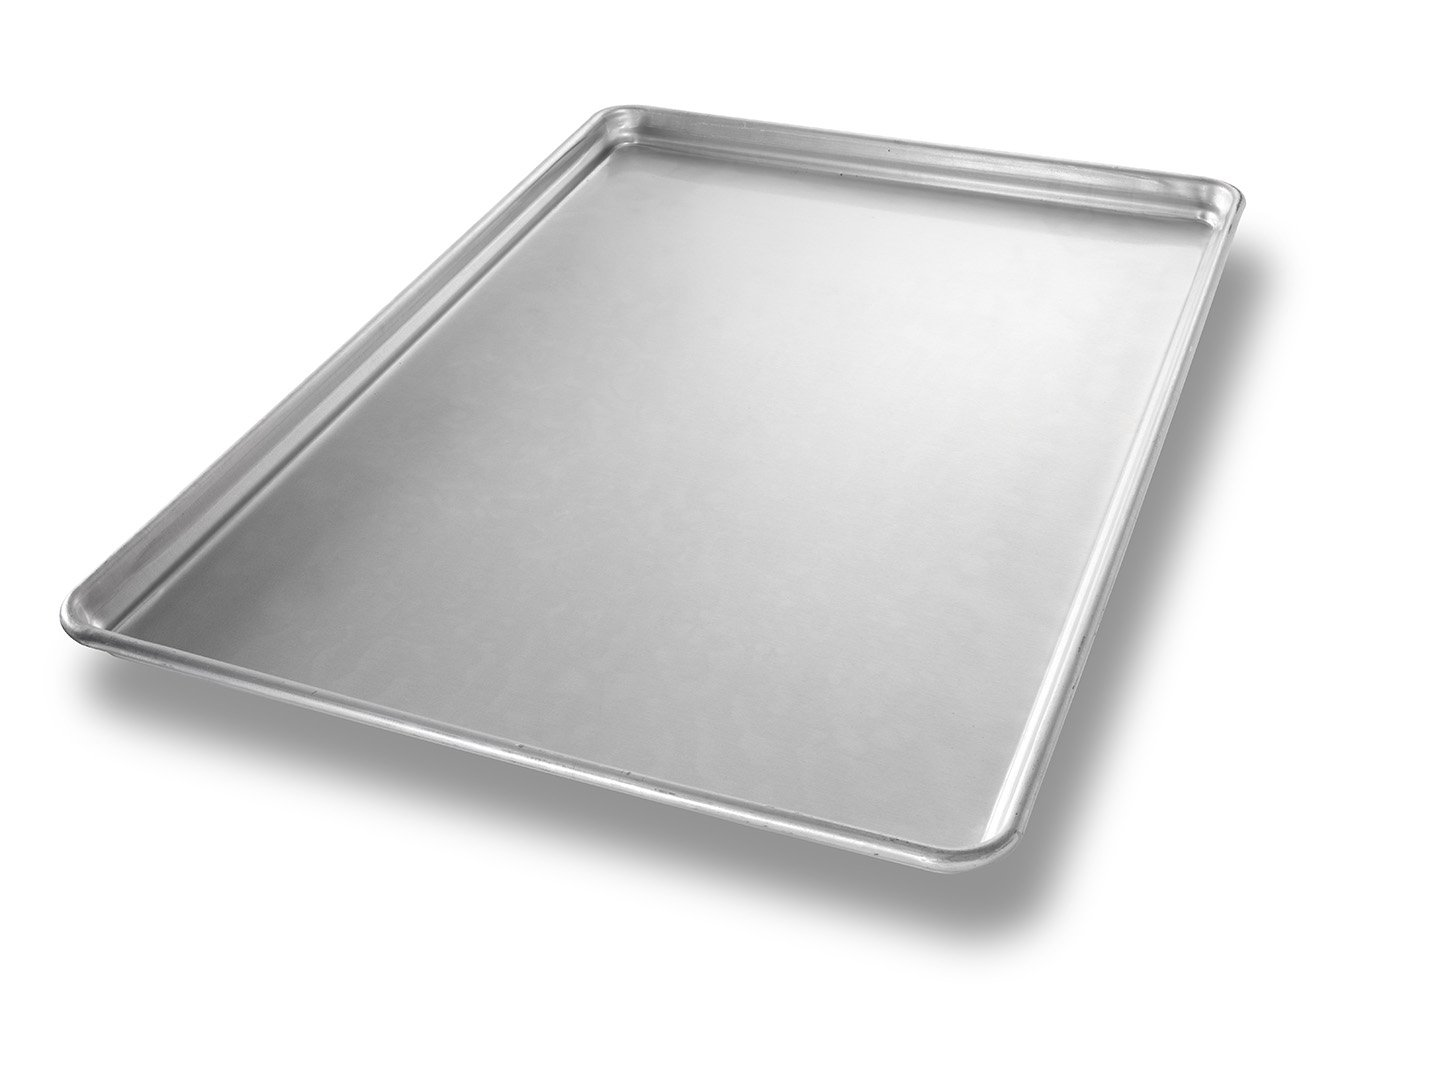 Full-Size Sheet Pan – AMERICOAT® Coating